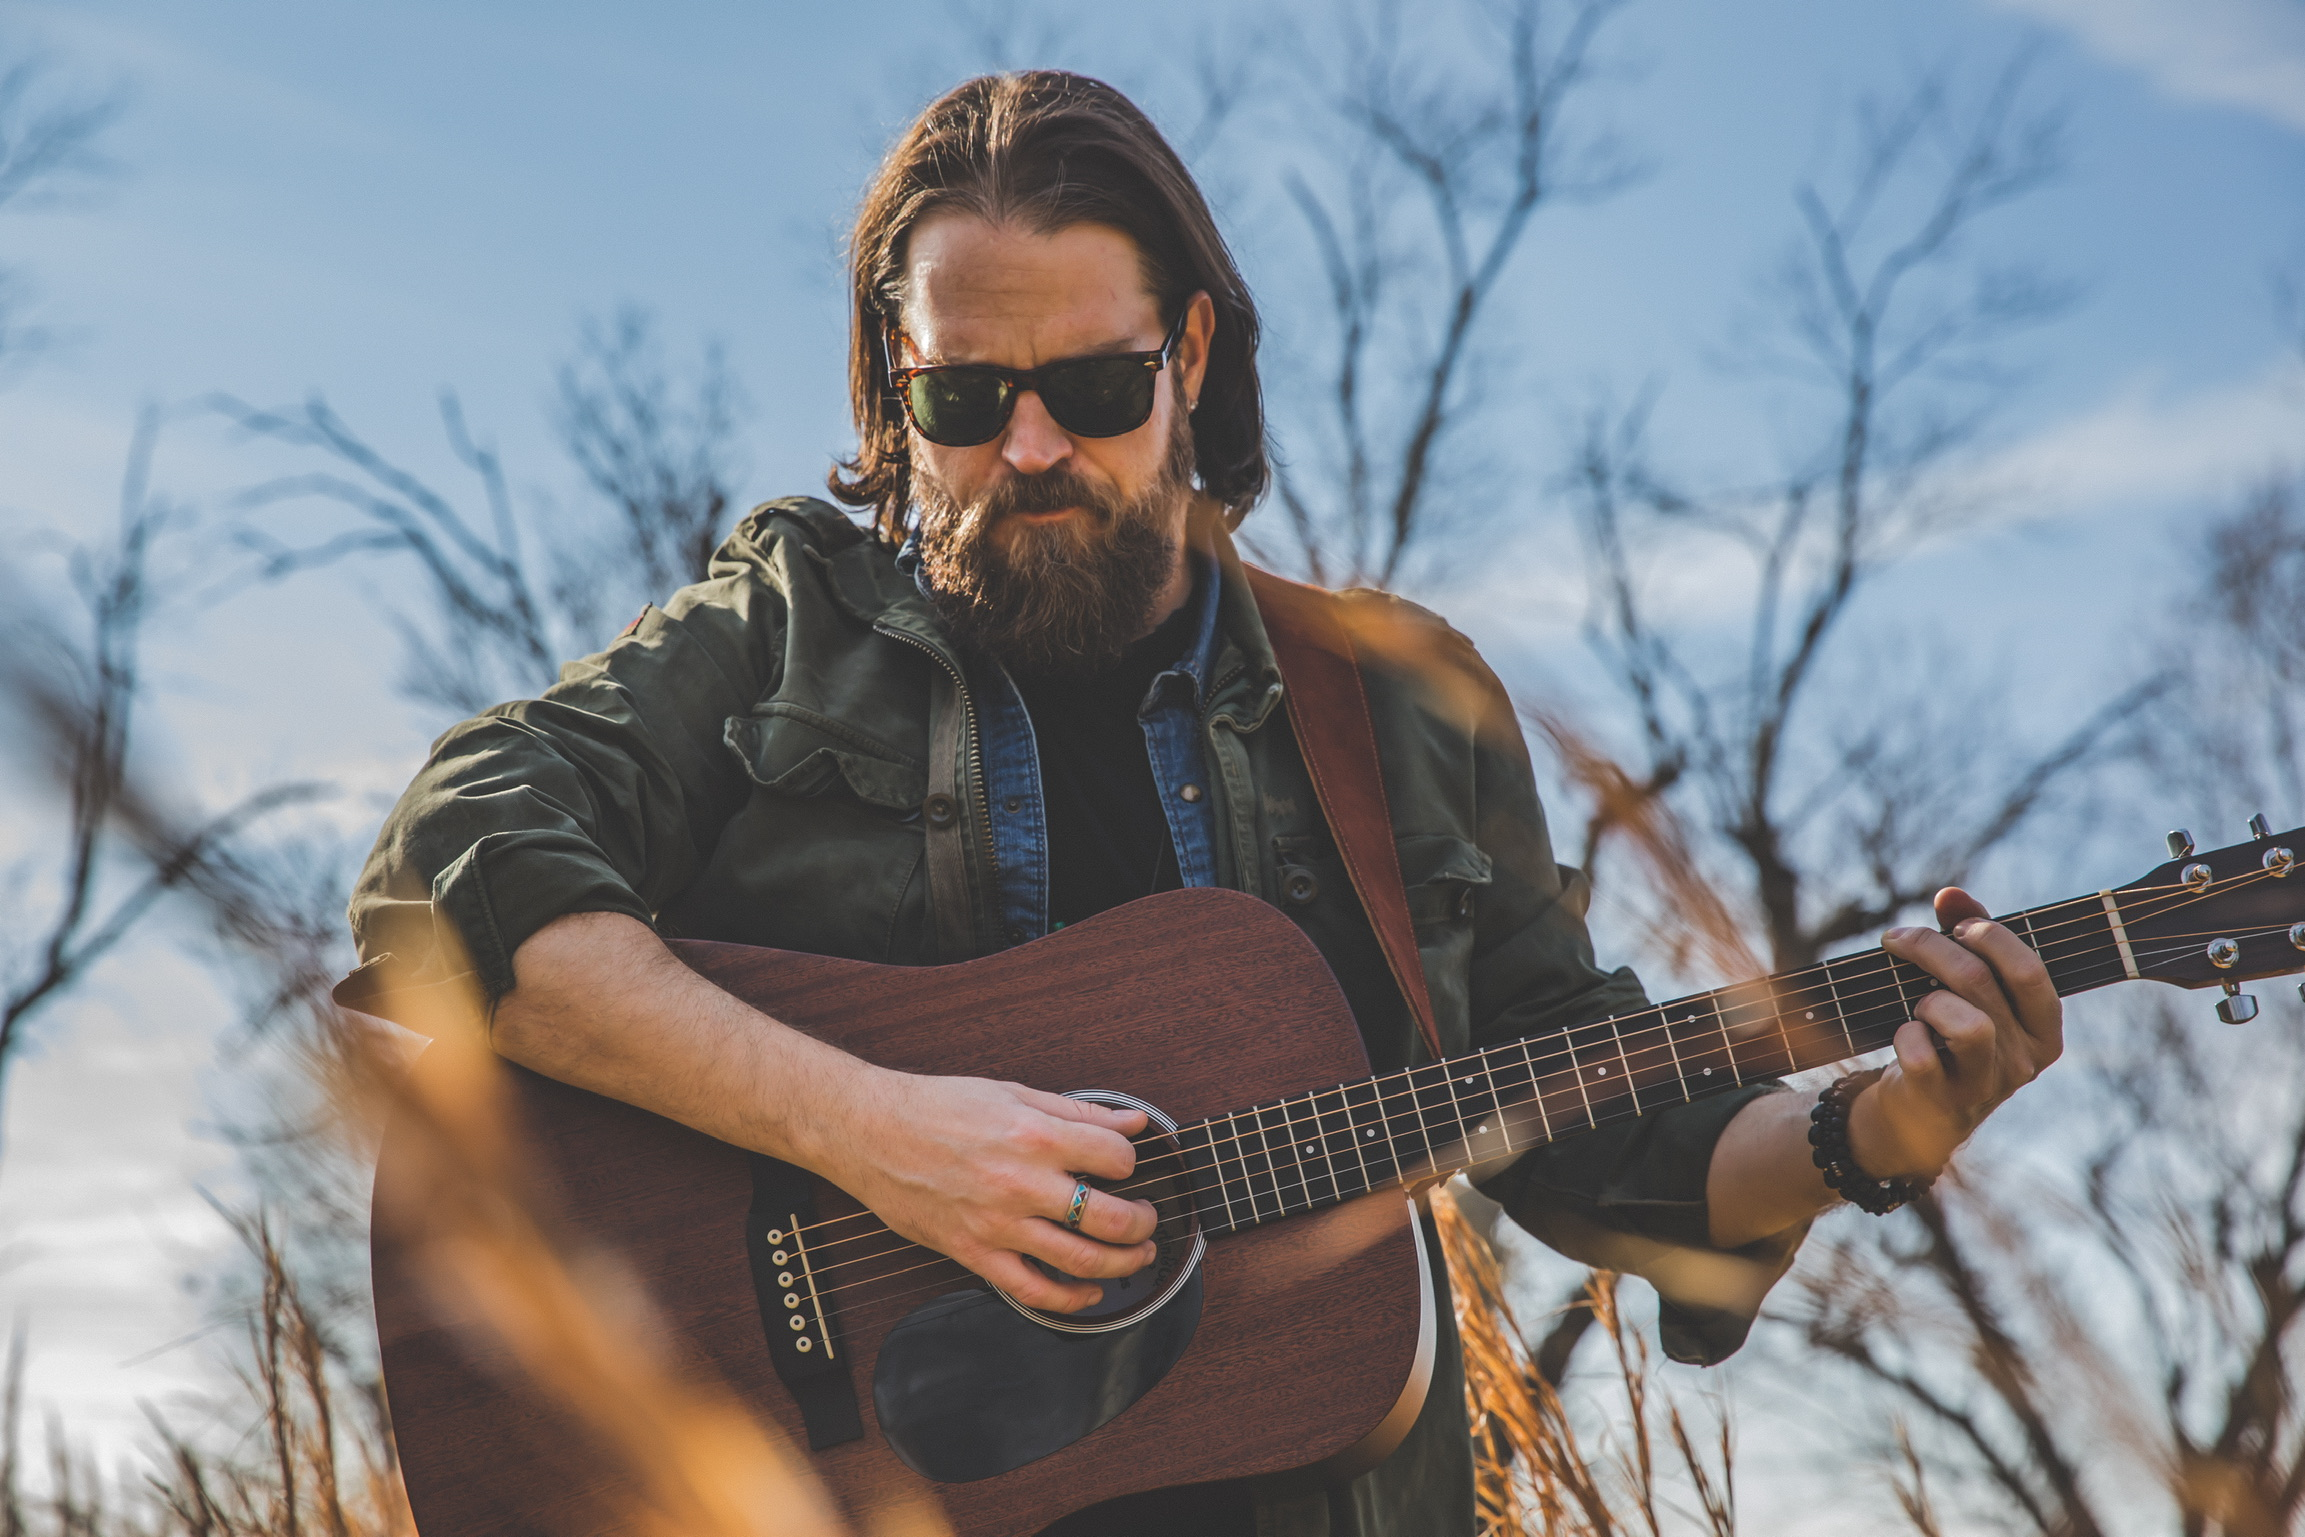 Country Music Artist Matt Burke's Roses Showcases his Subtle Songwriting Abilities